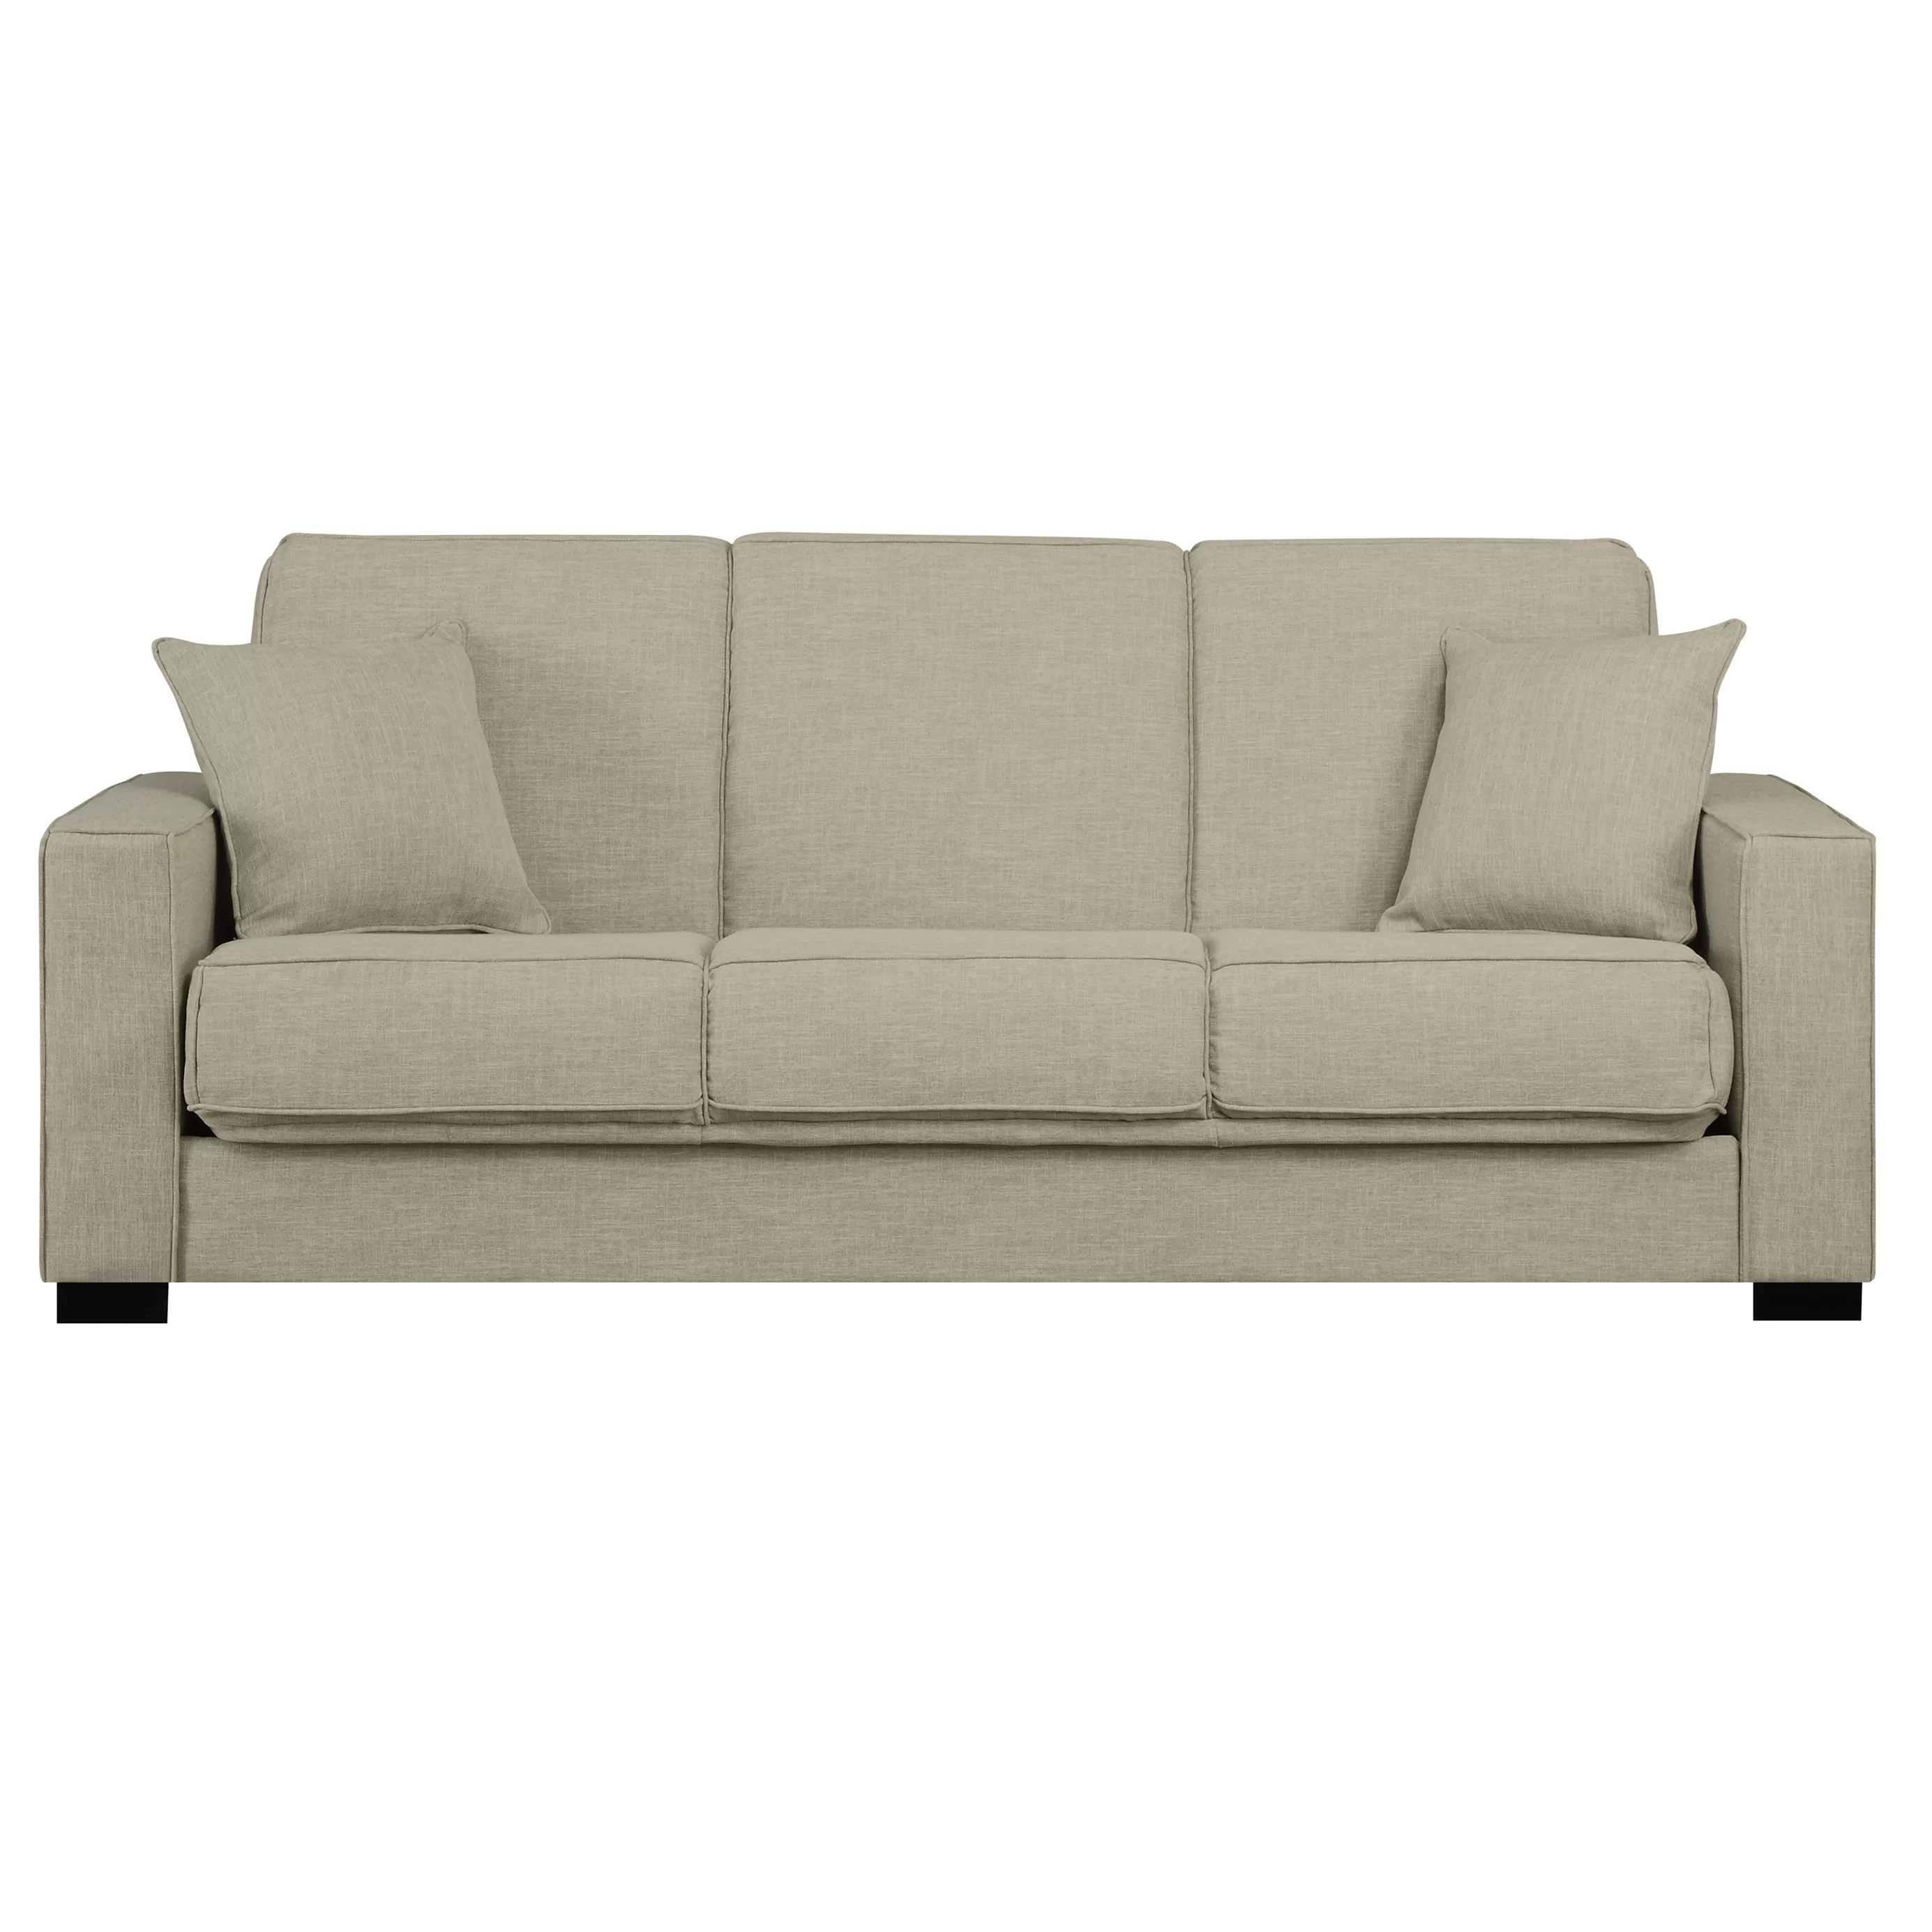 Convertible Chair Sleeper Zipcode Design Kaylee Full Convertible Sleeper Sofa